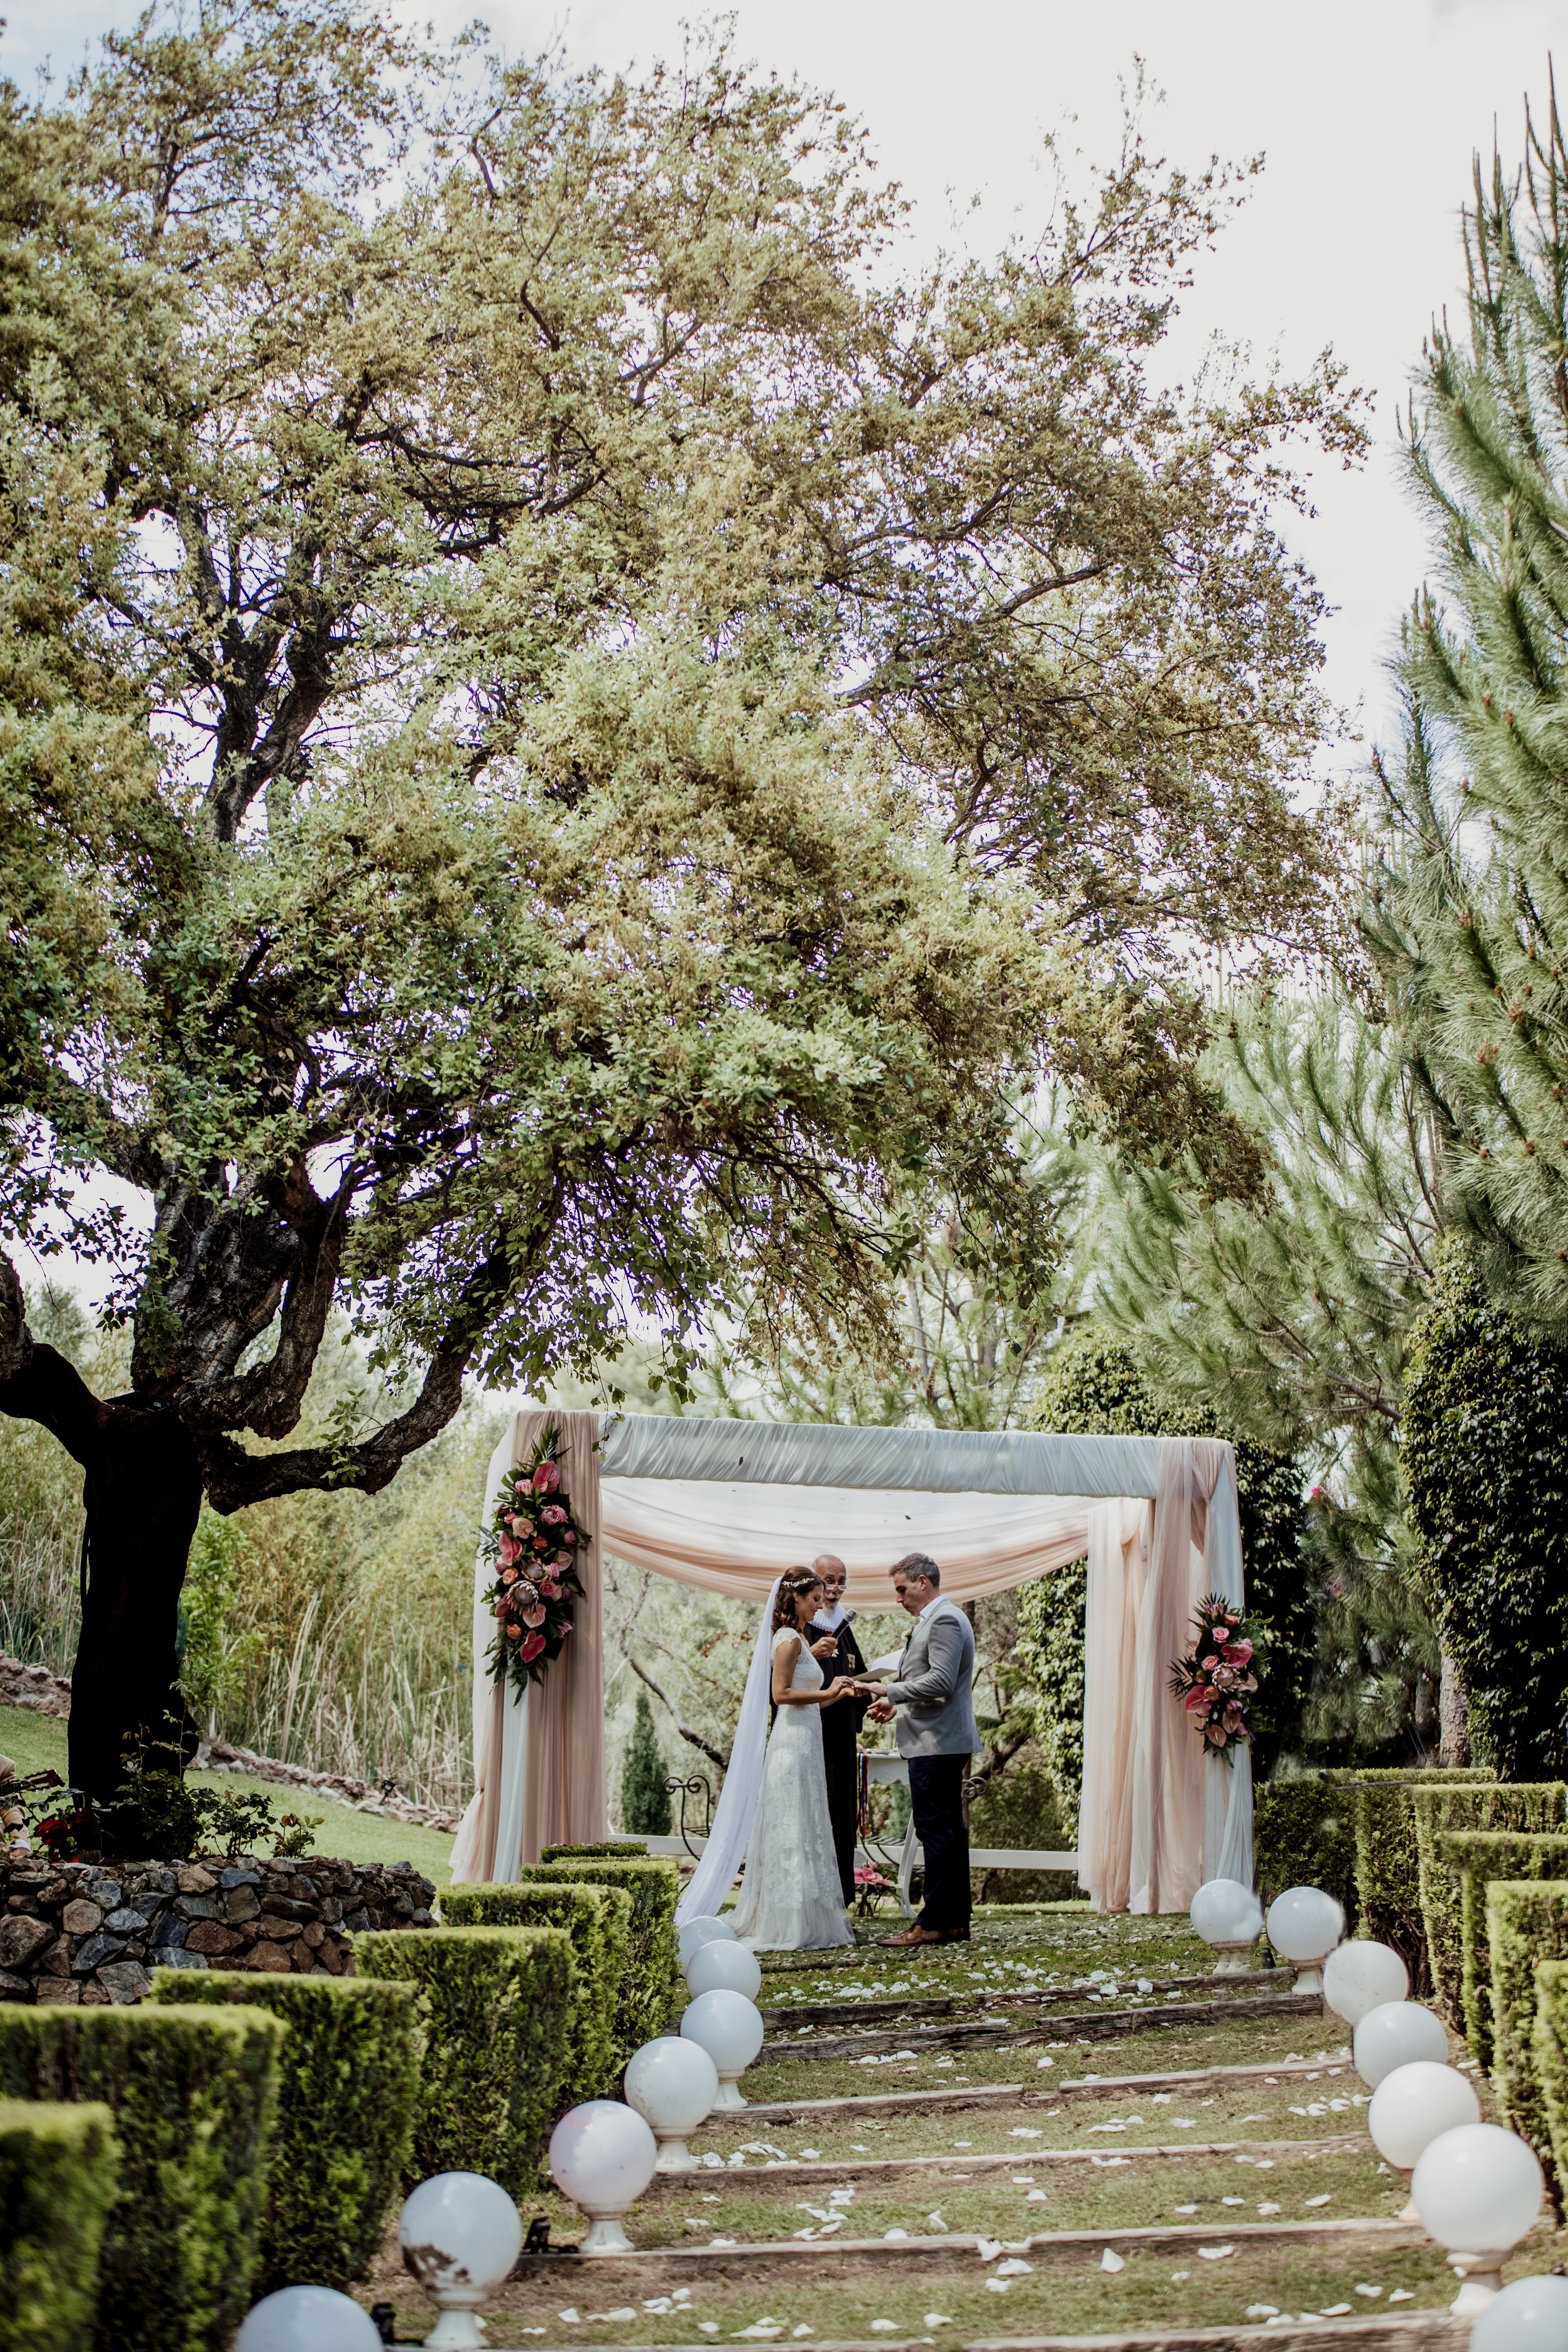 The bride and groom exchanging their vows in the villa's stunning gardens